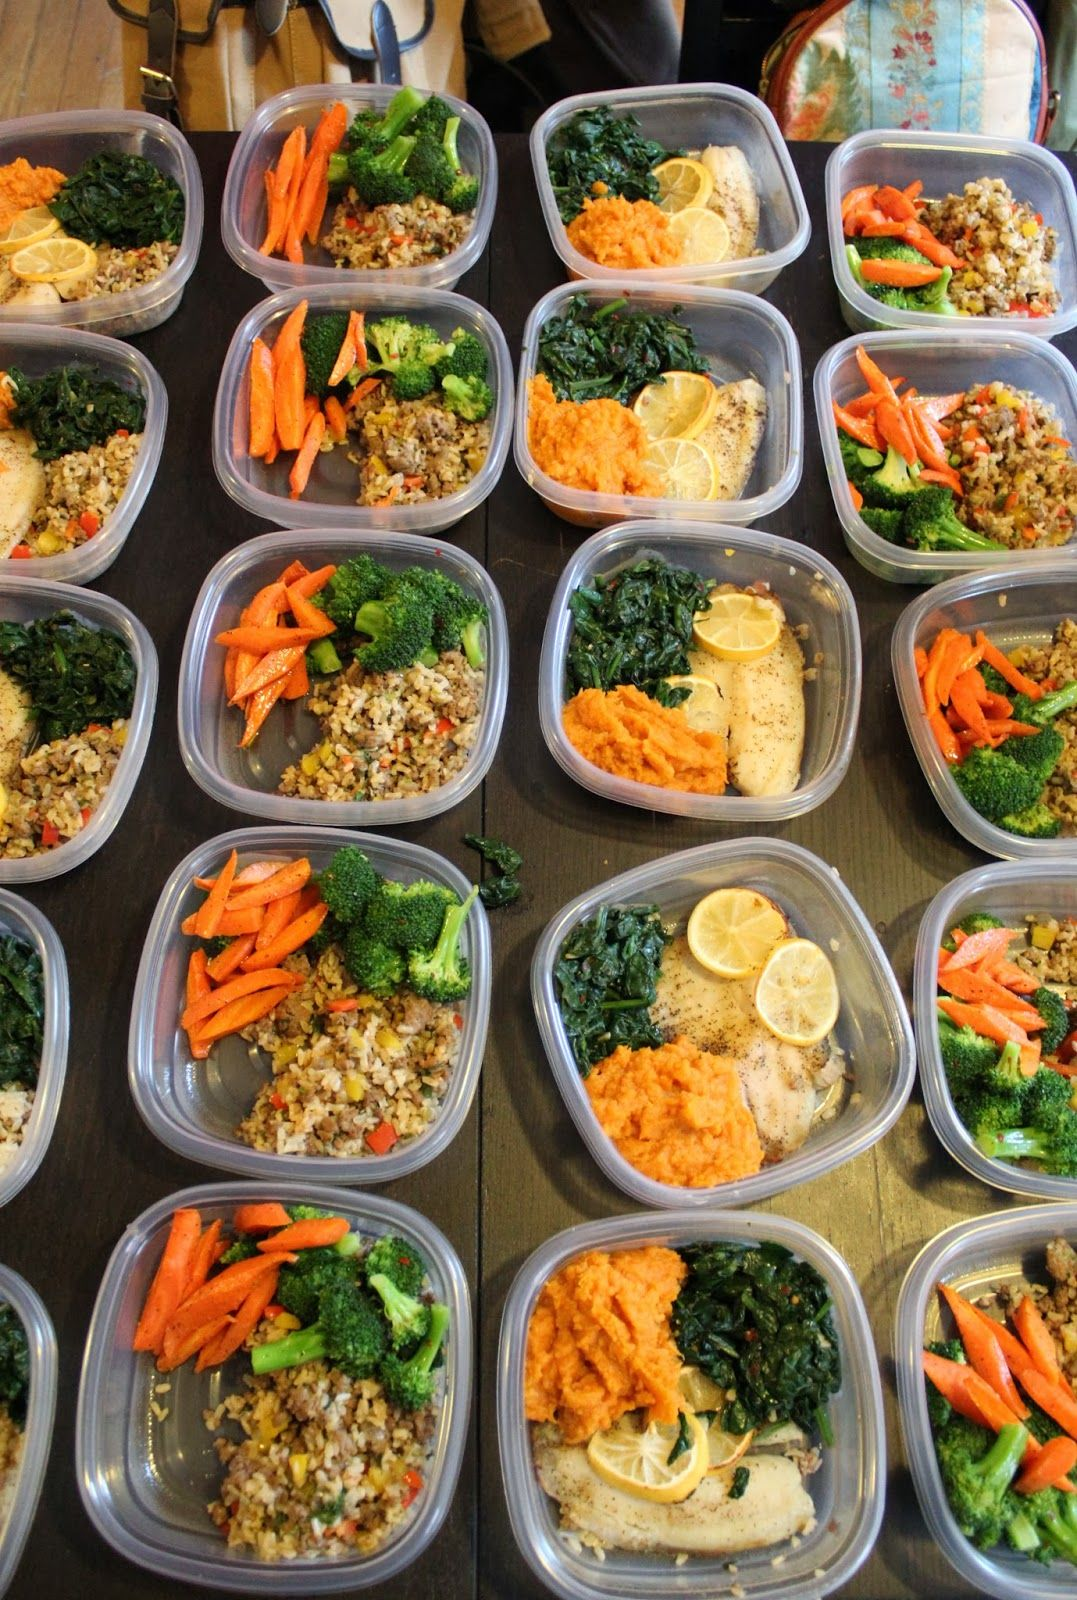 Mealprep expert tips for easy healthy and affordable meals all mealprep expert tips for easy healthy and affordable meals all week long forumfinder Image collections